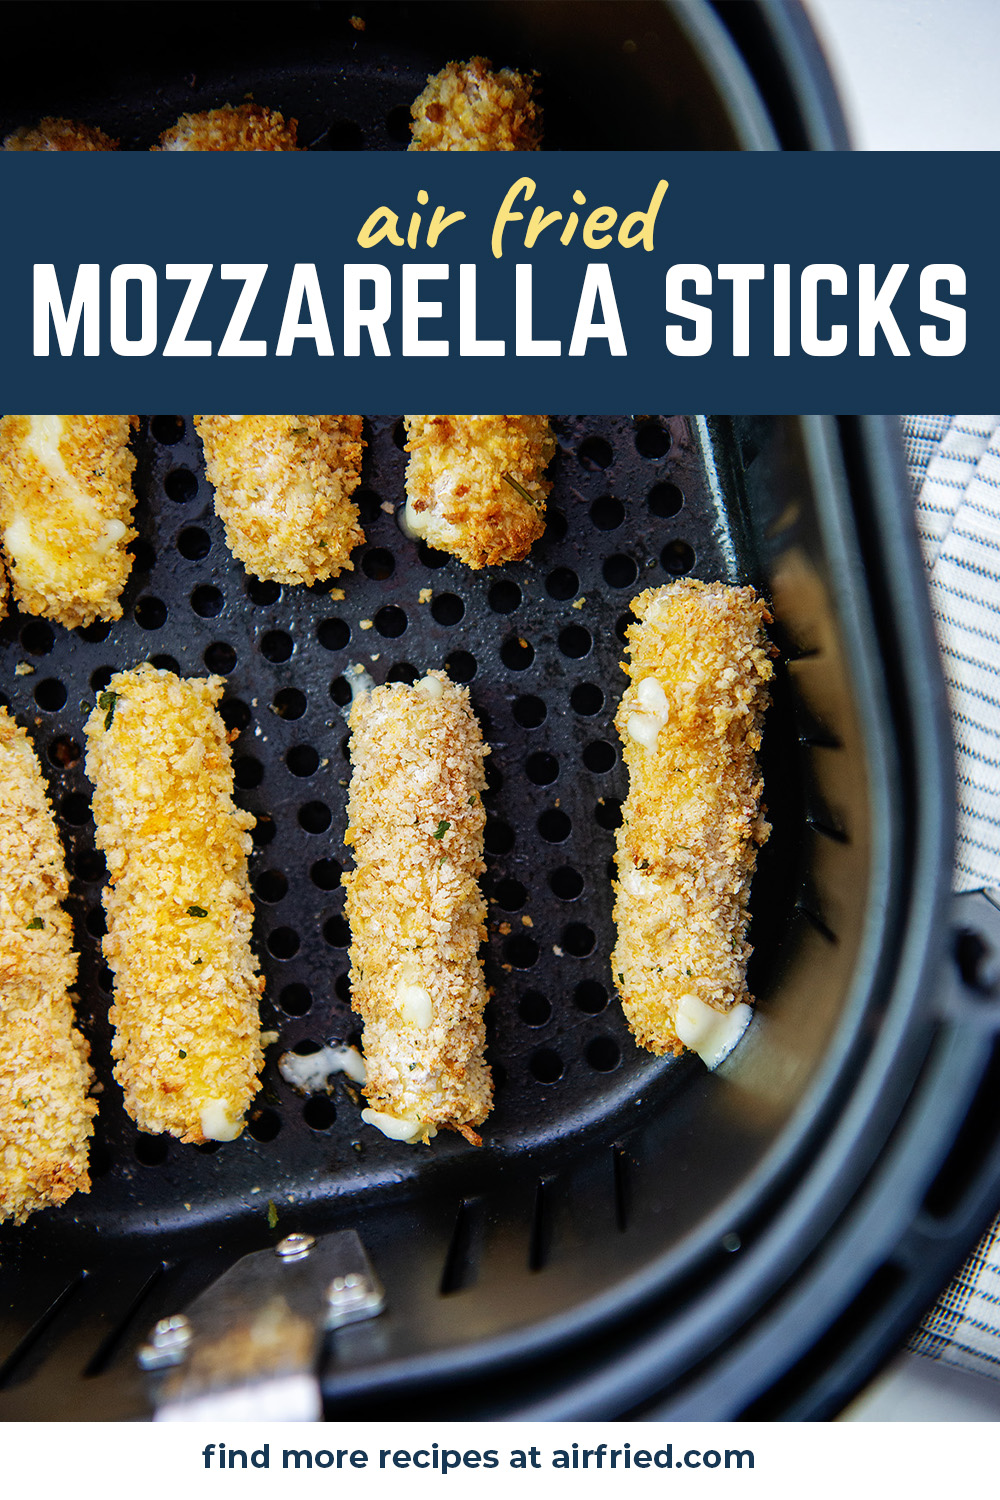 These no-fuss homemade cheese sticks were cooked in the air fryer!  So easy, you have to try it.  #mozzarellasticks #airfried #easyrecipe